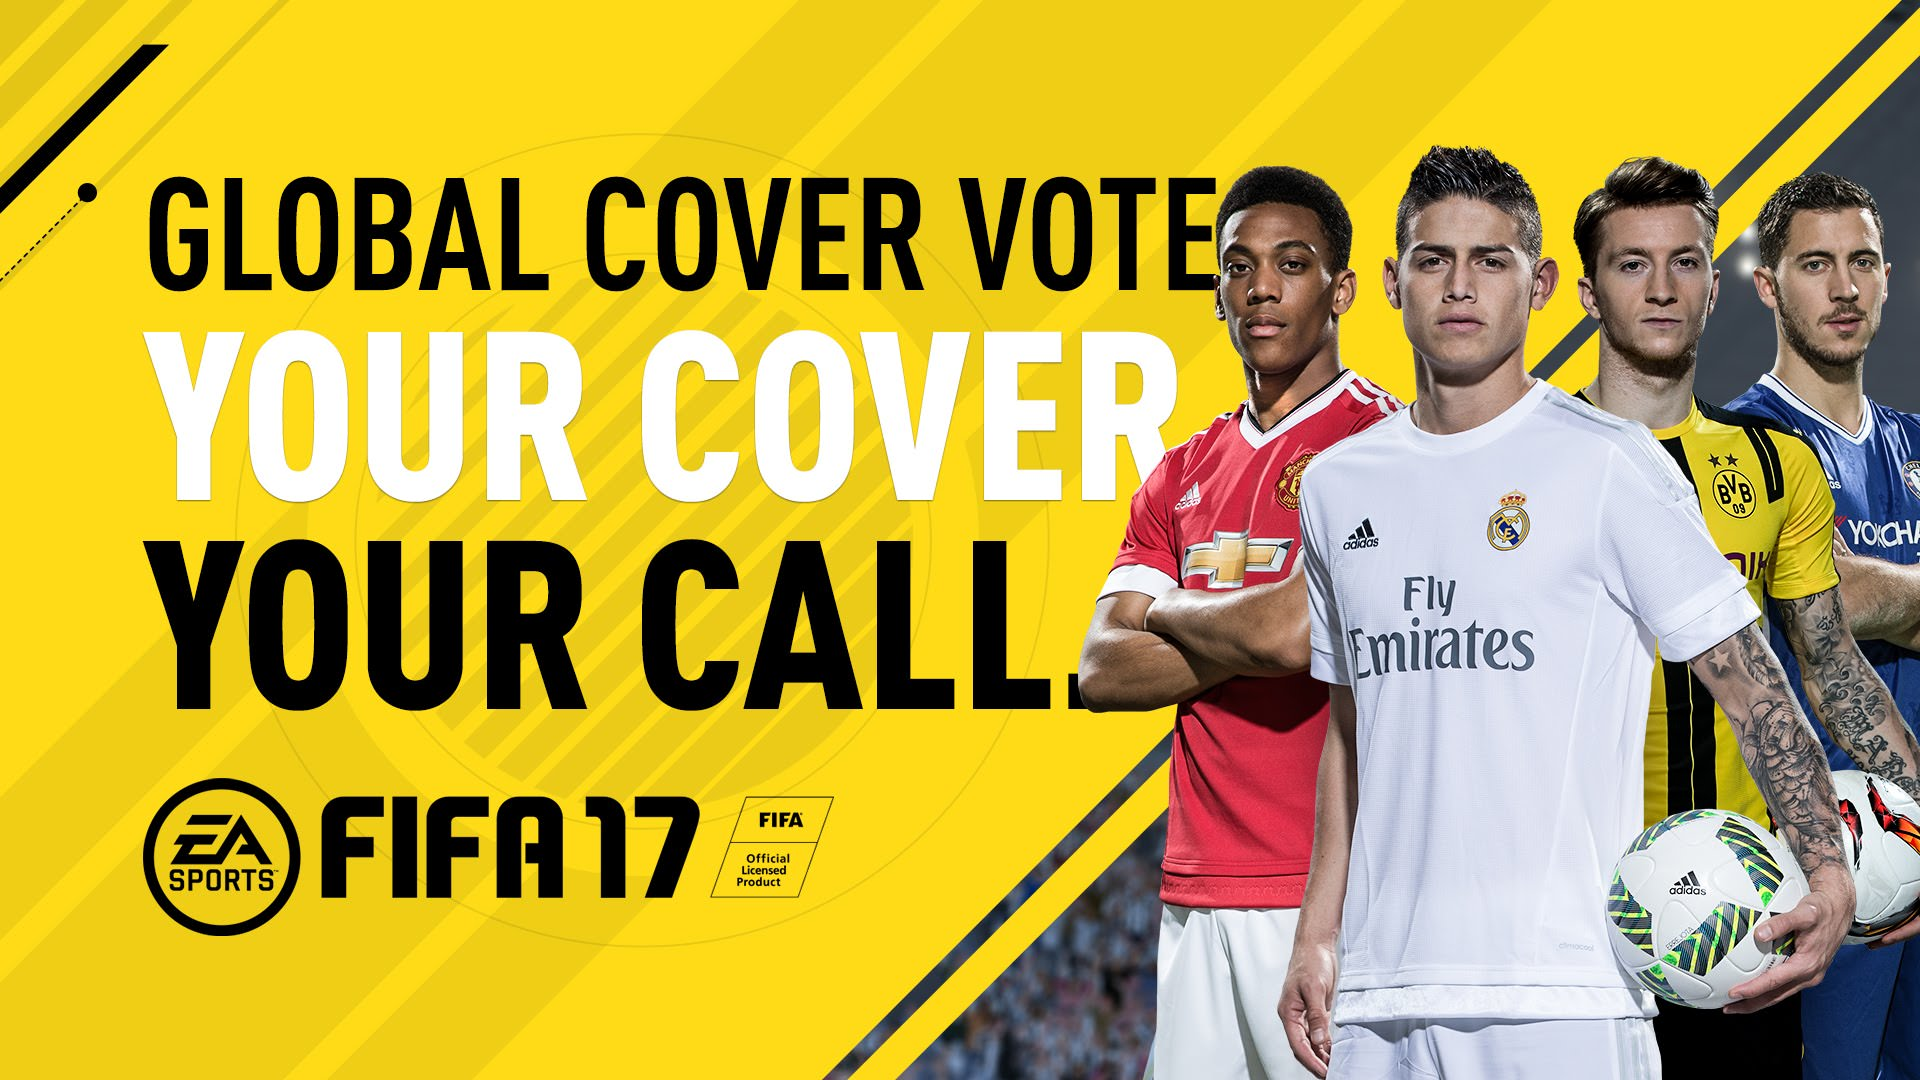 Vote for FIFA 17 Cover